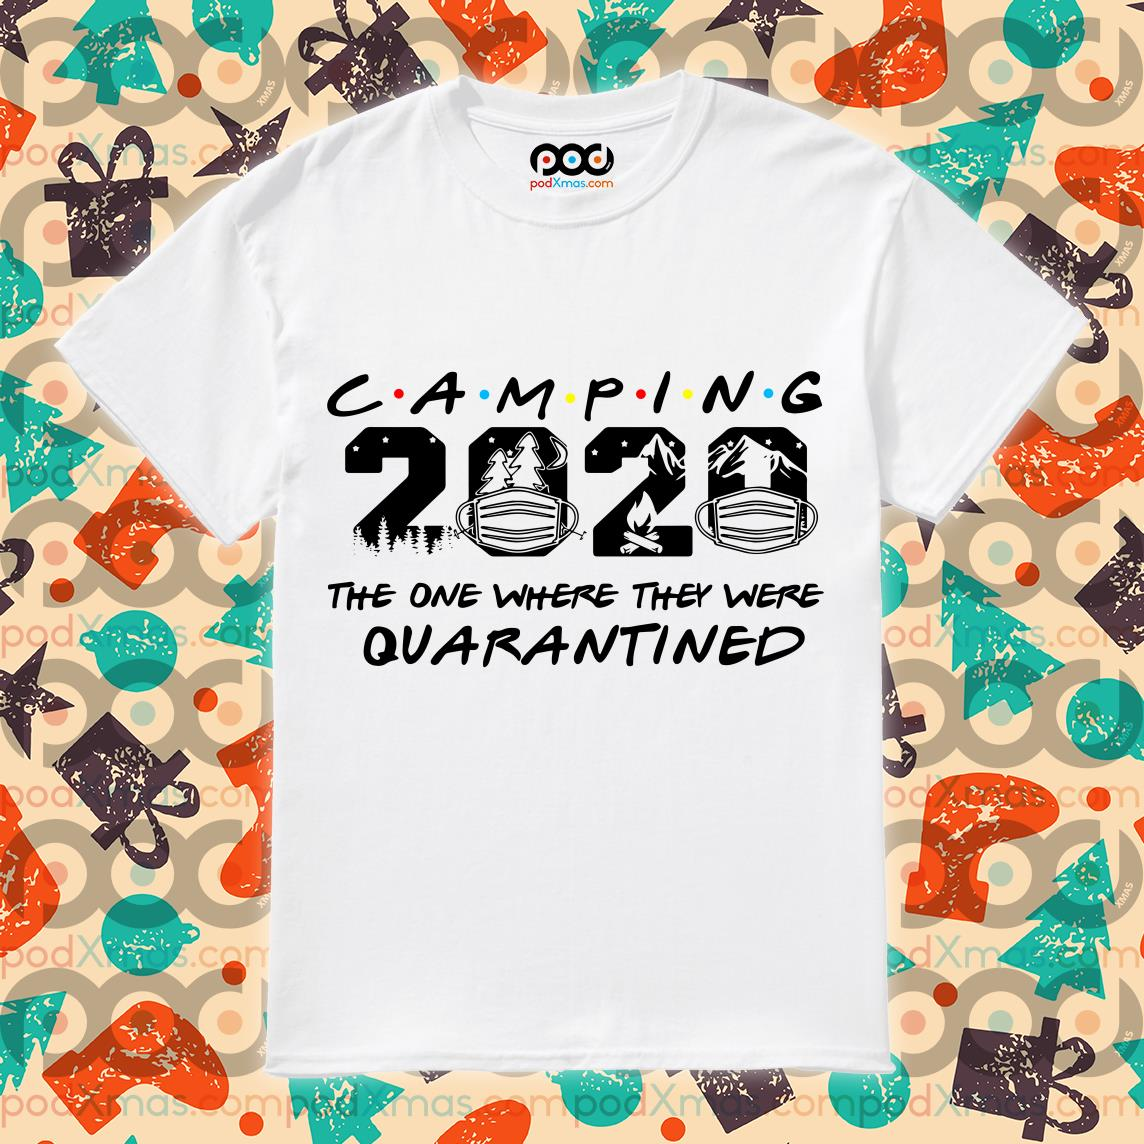 Camping 2020 the one where they were Quarantined T-shirt